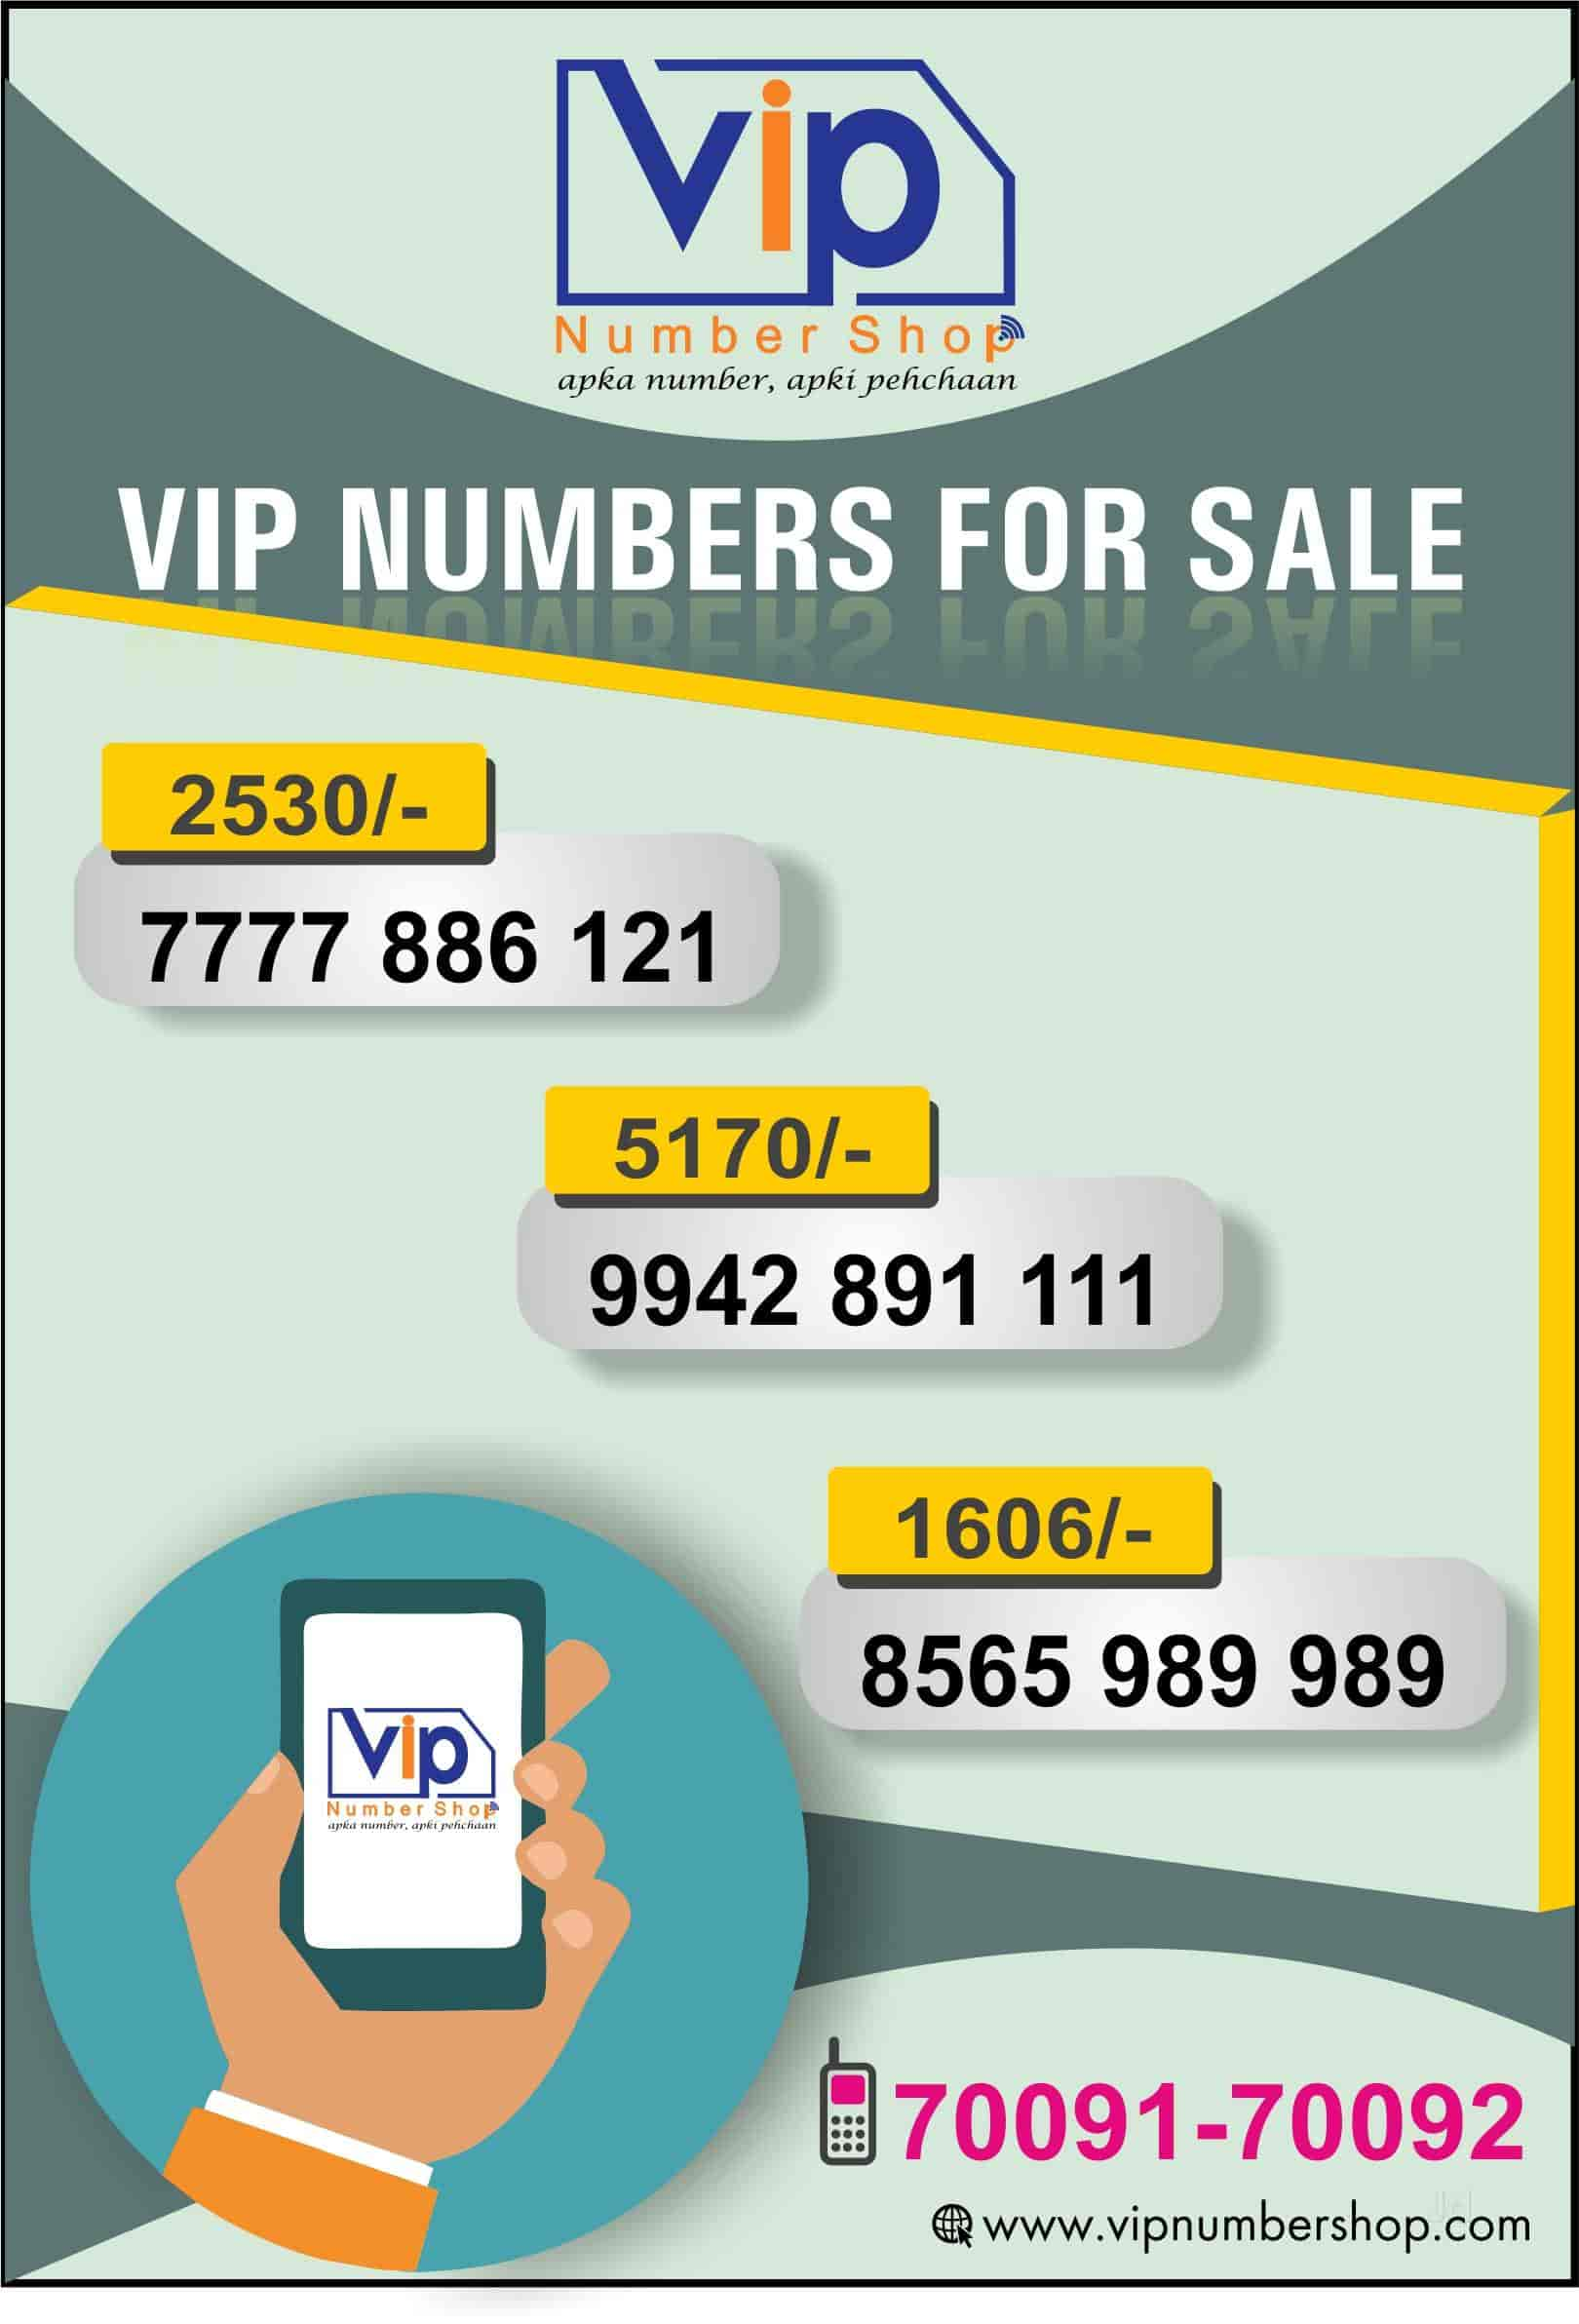 VIP Number Shopcom Photos, Choti Baradari, Jalandhar- Pictures